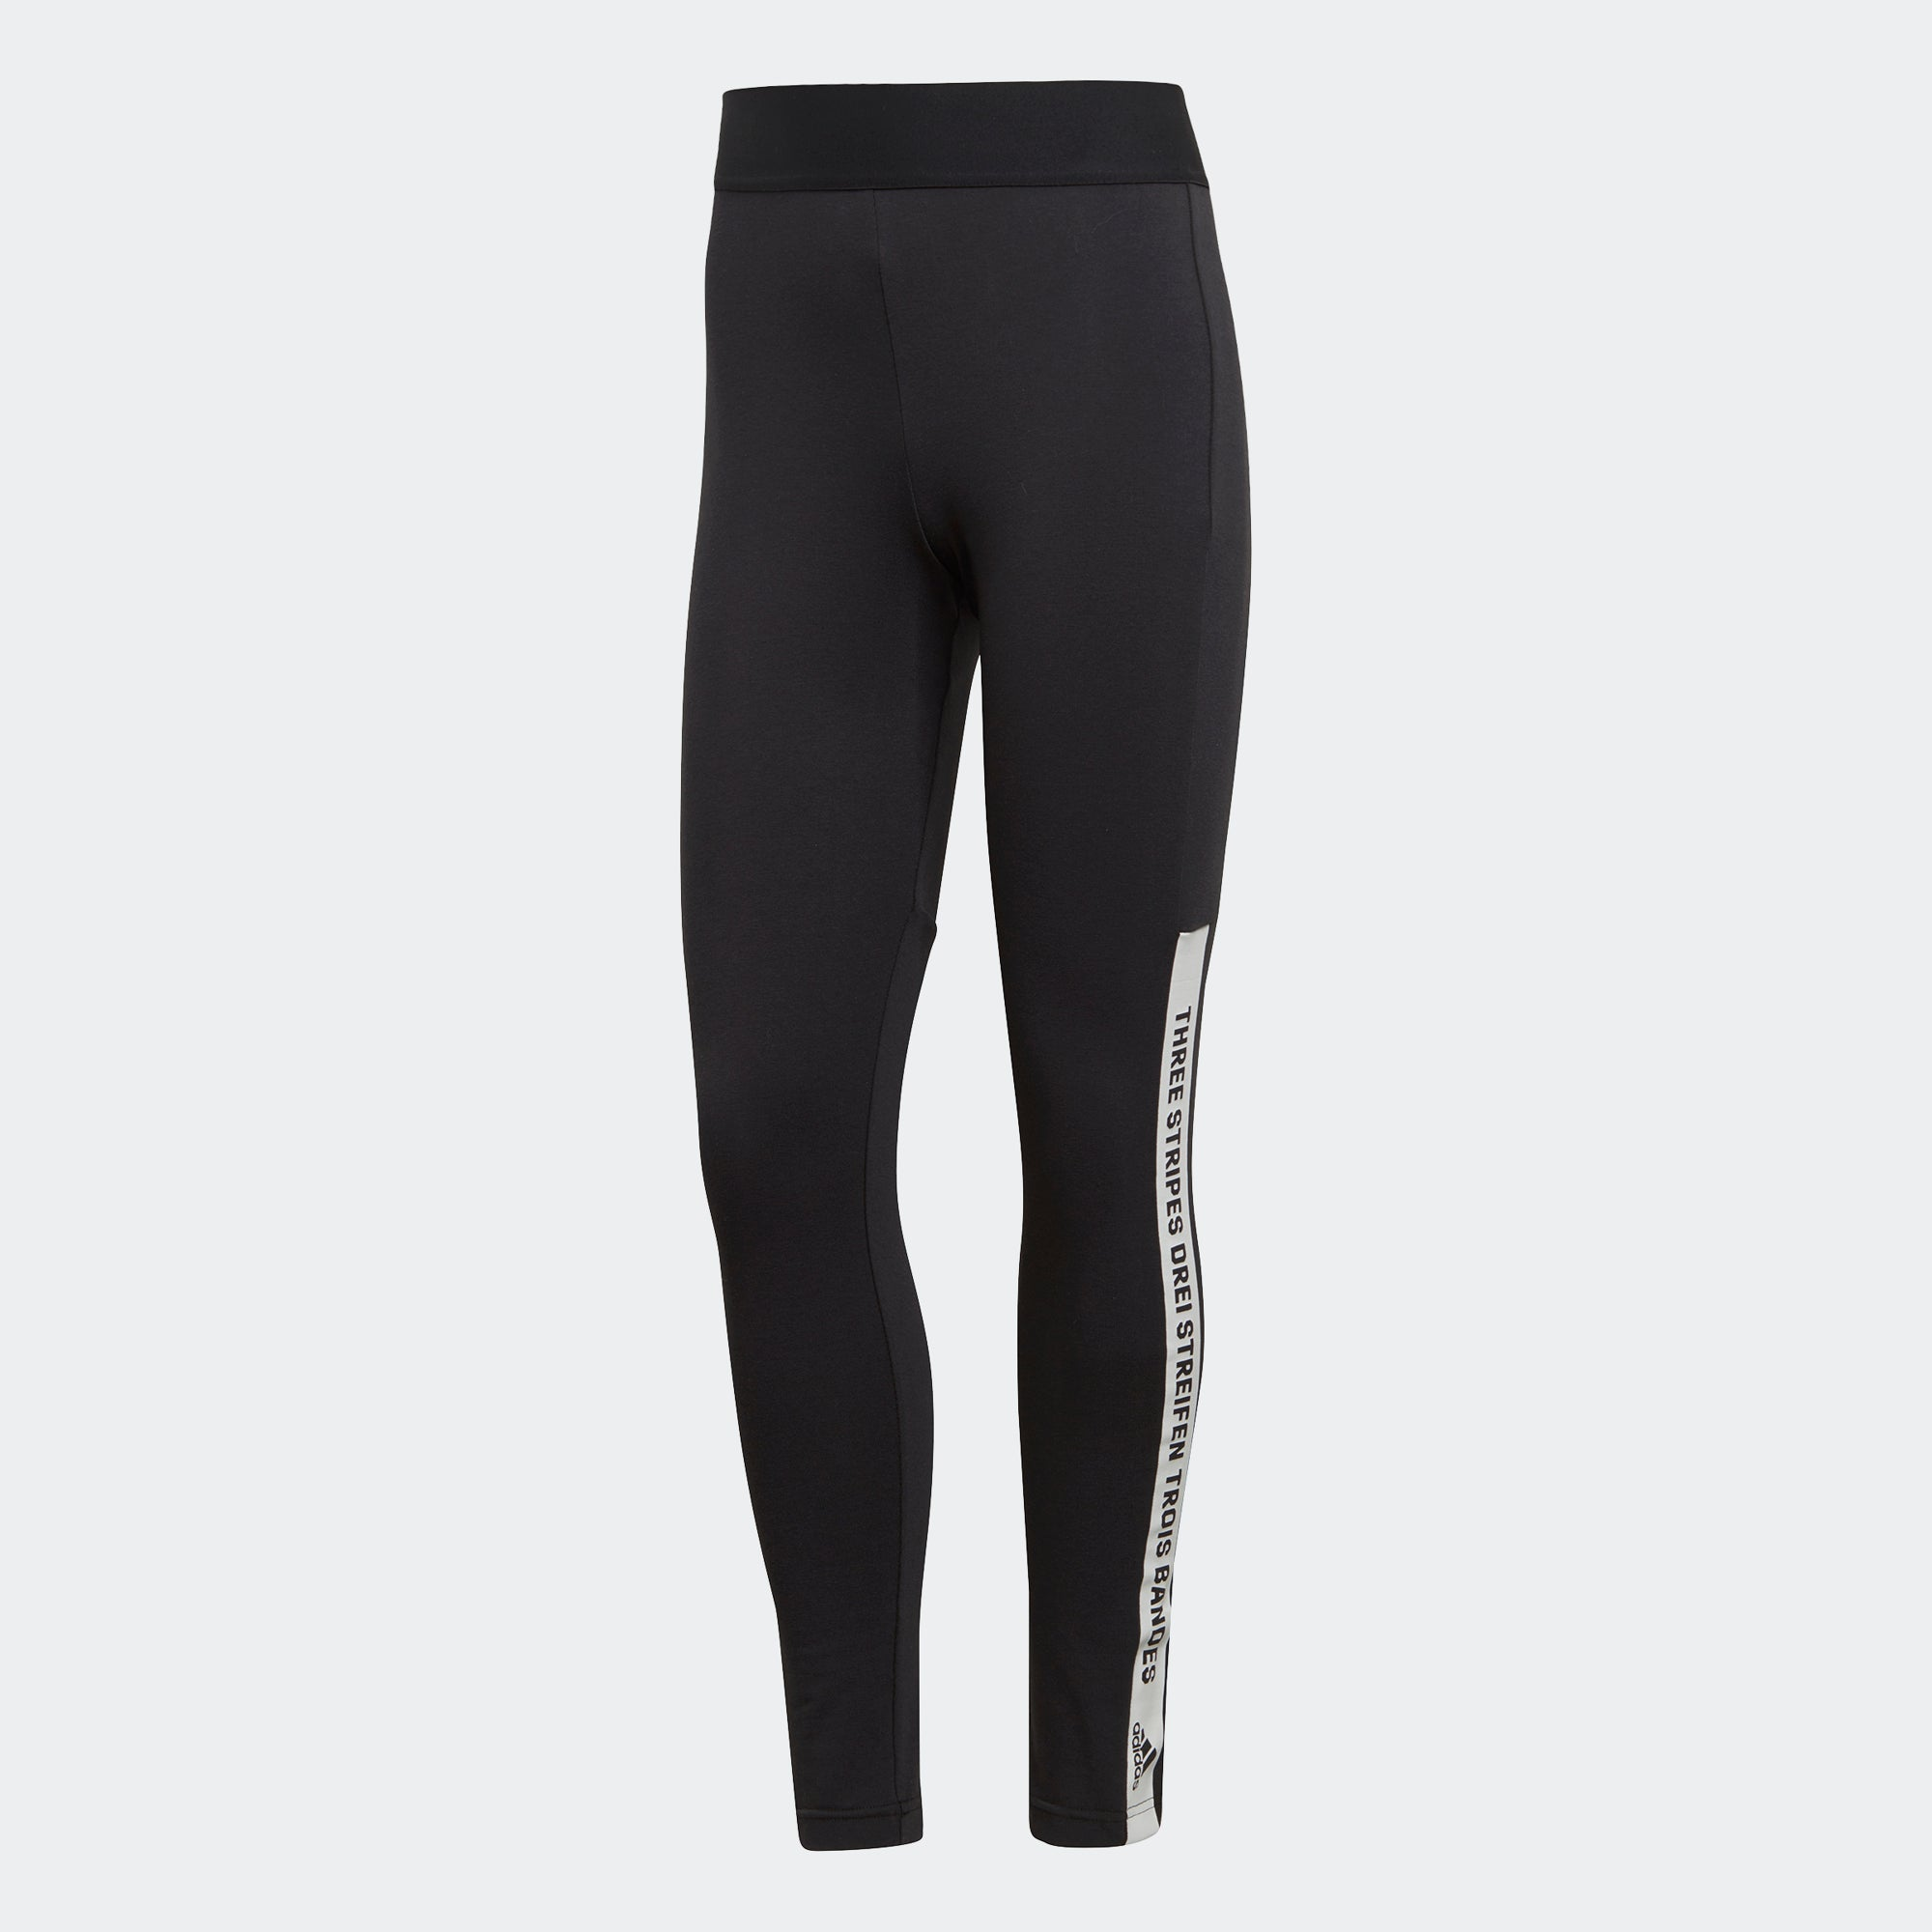 06c9a22706077 adidas Sport ID Tights Black CZ5674 | Chicago City Sports